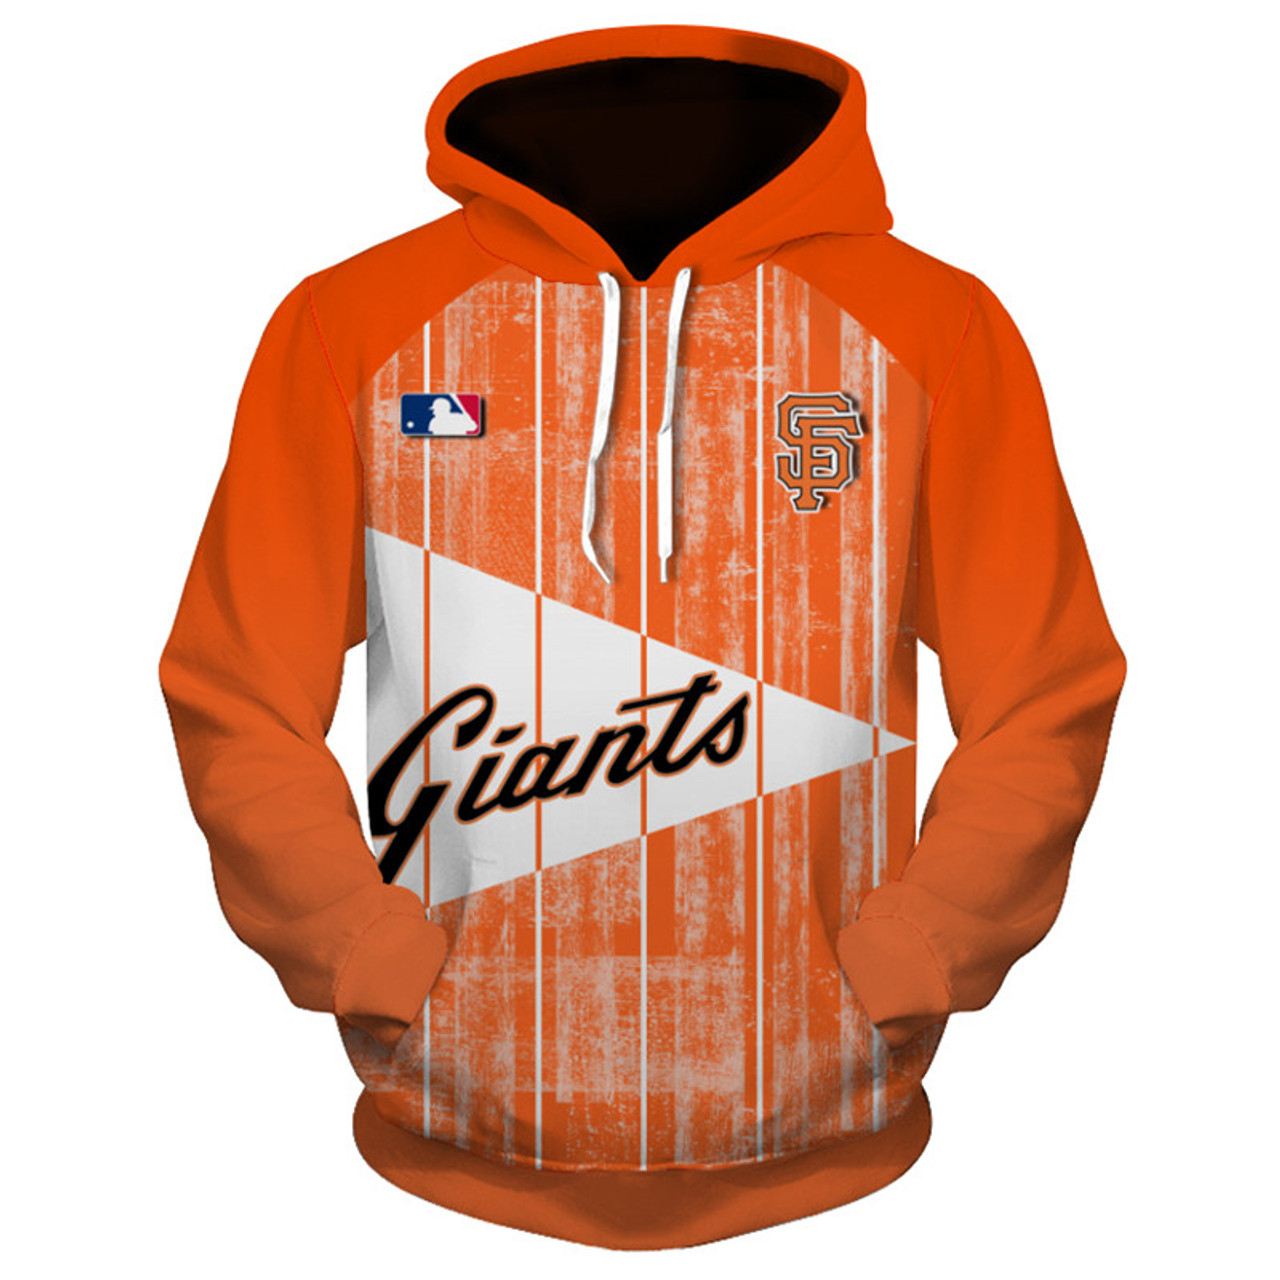 **(OFFICIAL-M.L.B.SAN-FRANCISCO-GIANTS-TEAM-HOODIES/NEW-CUSTOM-DETAILED-3D-GRAPHIC-PRINTED/PREMIUM-ALL-OVER-DOUBLE-SIDED-PRINT/OFFICIAL-GIANTS-TEAM-COLORS & CLASSIC-GIANTS-BASEBALL-3D-GRAPHIC-LOGOS/PREMIUM-PULLOVER-POCKET-M.L.B.HOODIES)**